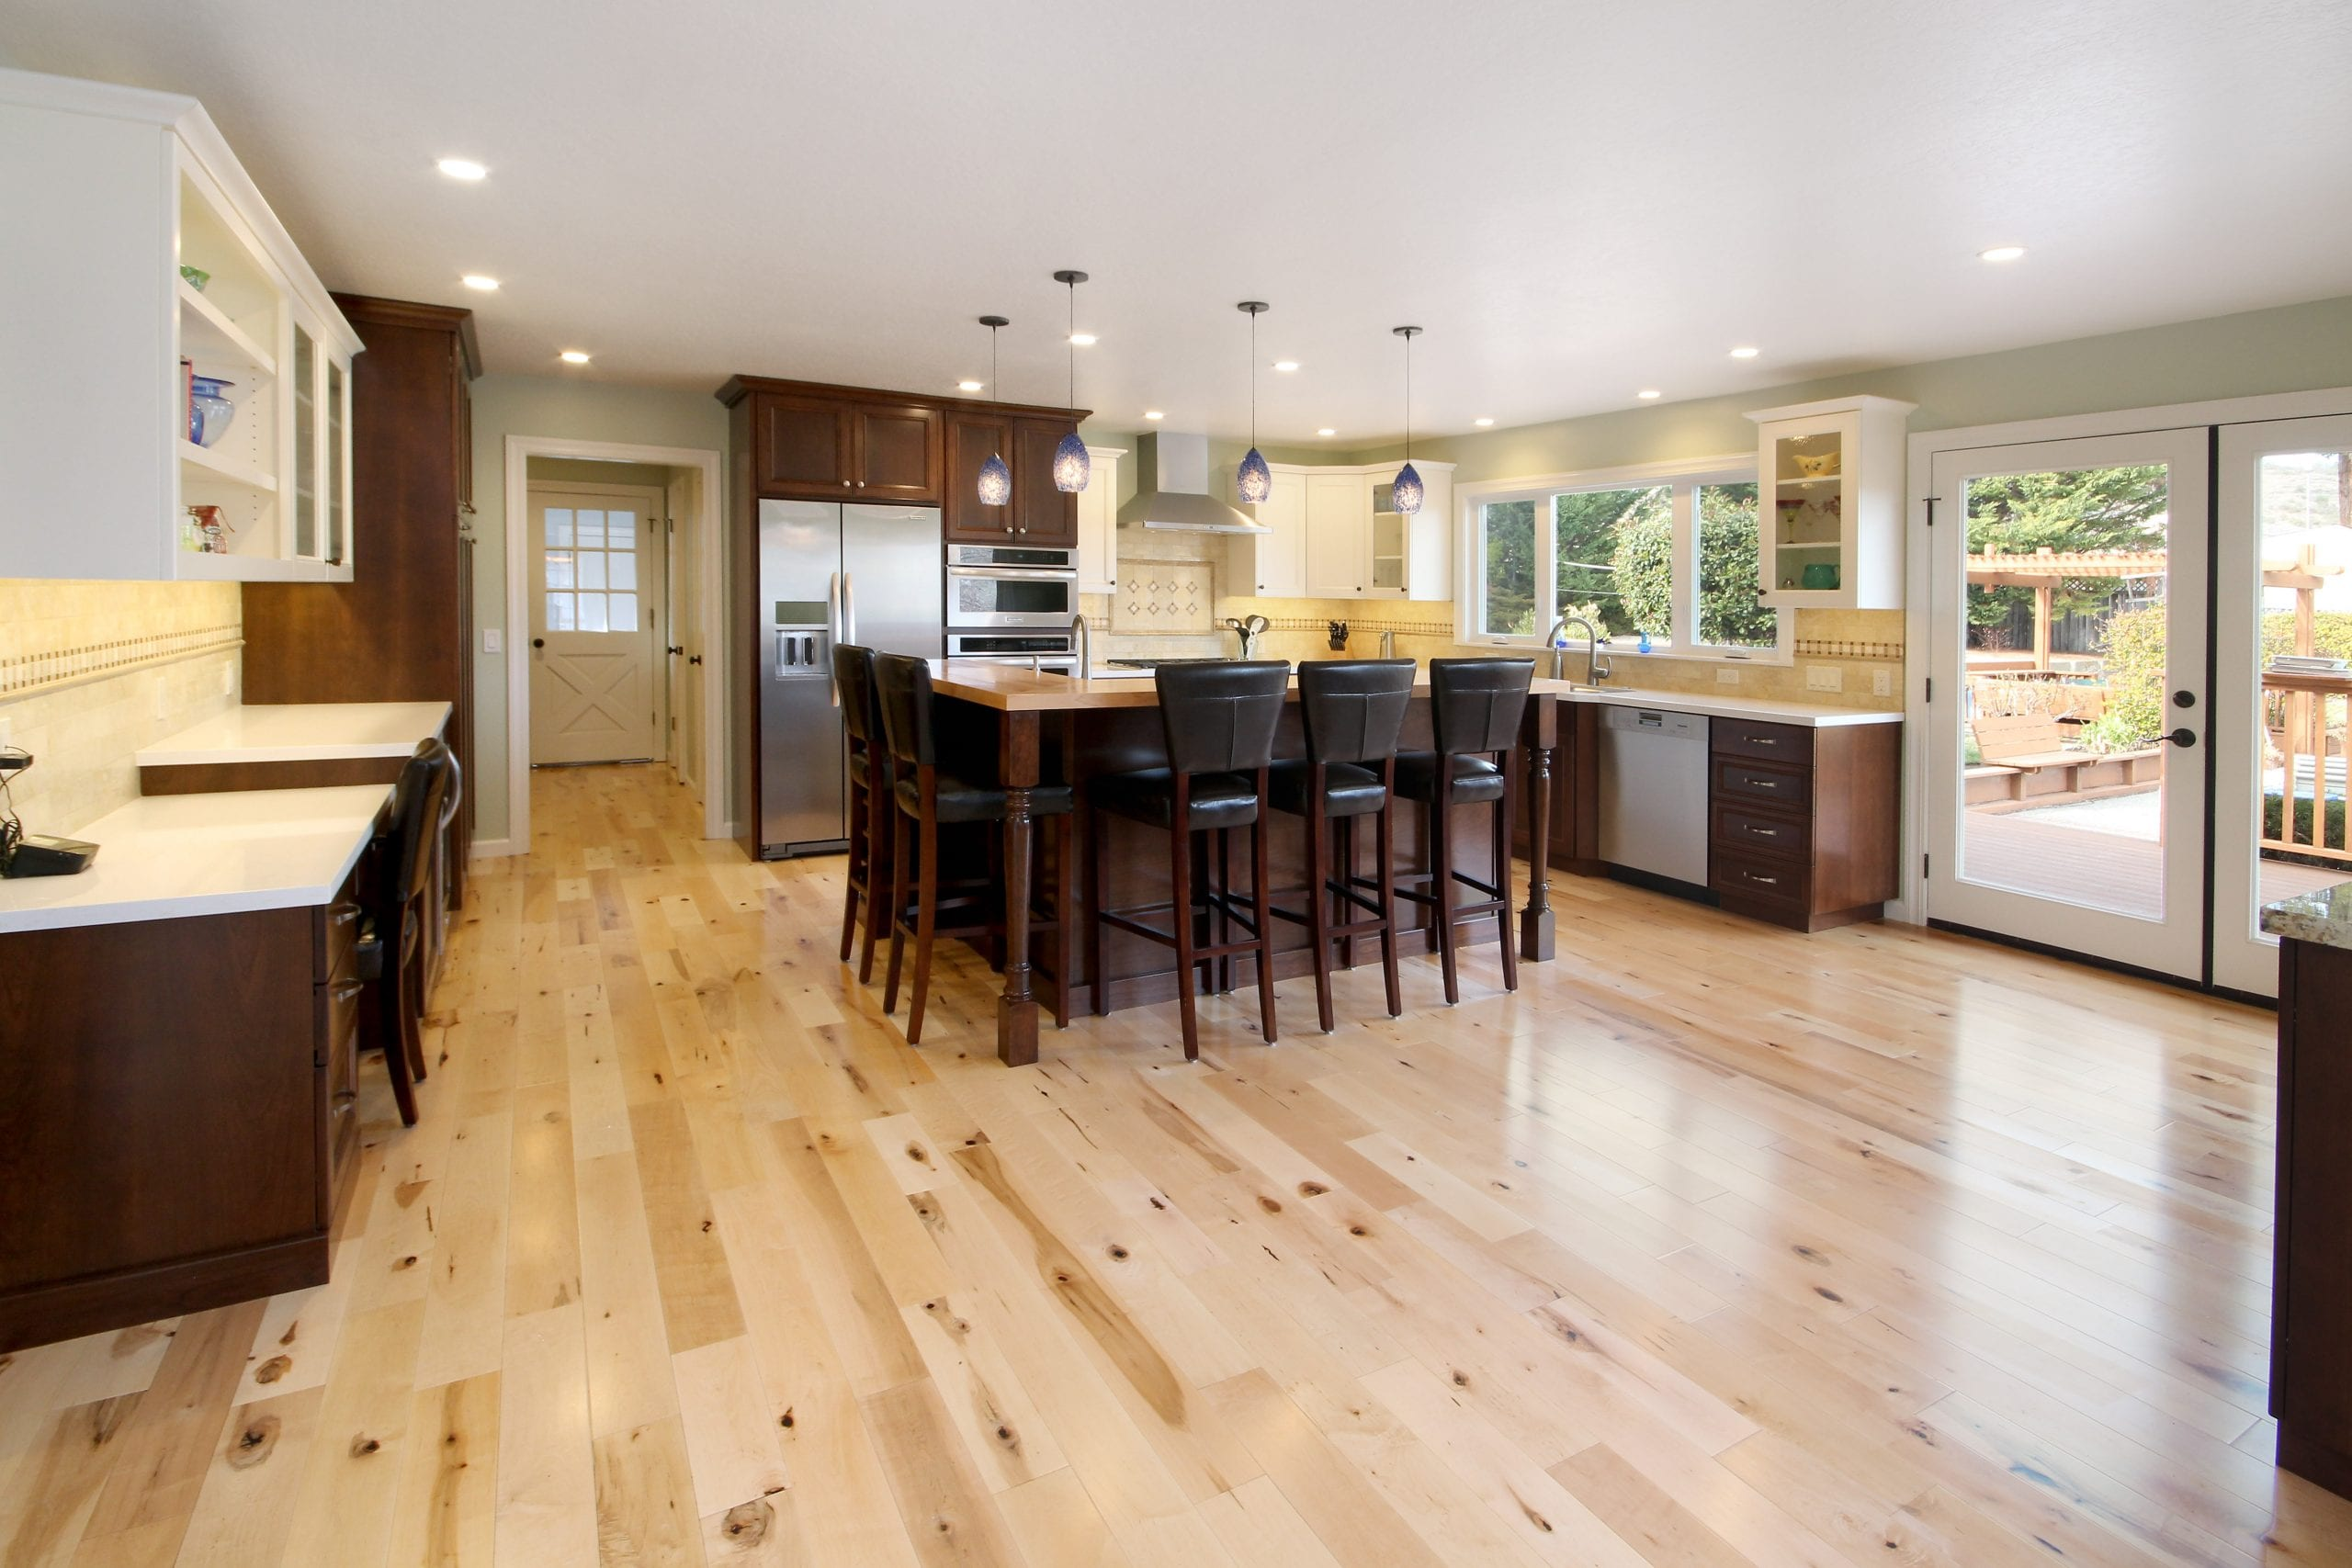 Kitchen remodel after photo featuring hardwood floors and modern style